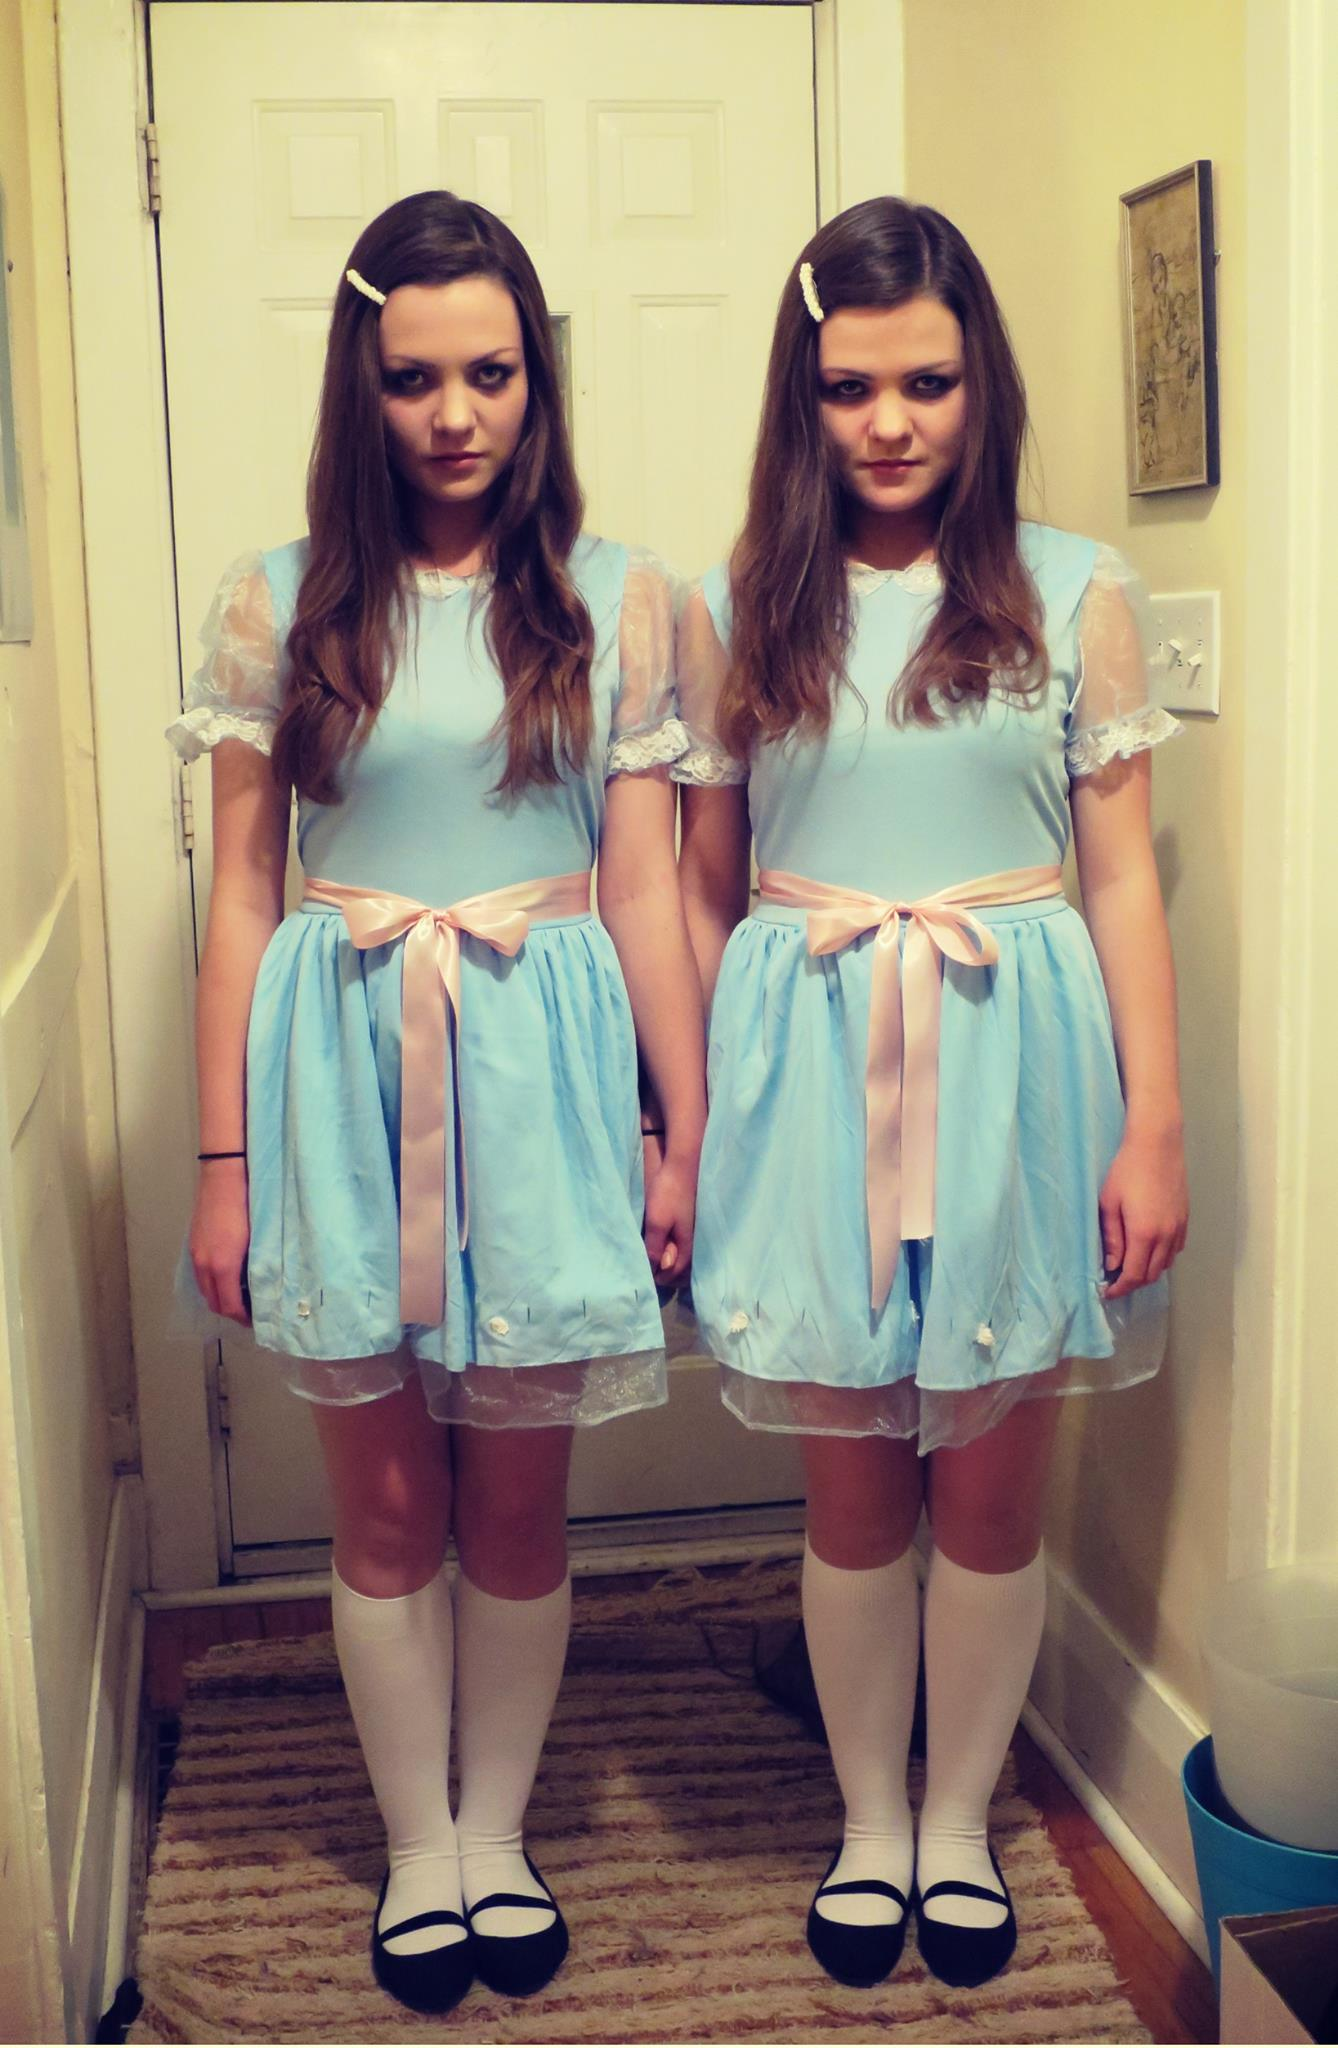 28 - The Very Best Costumes From Halloween 2015